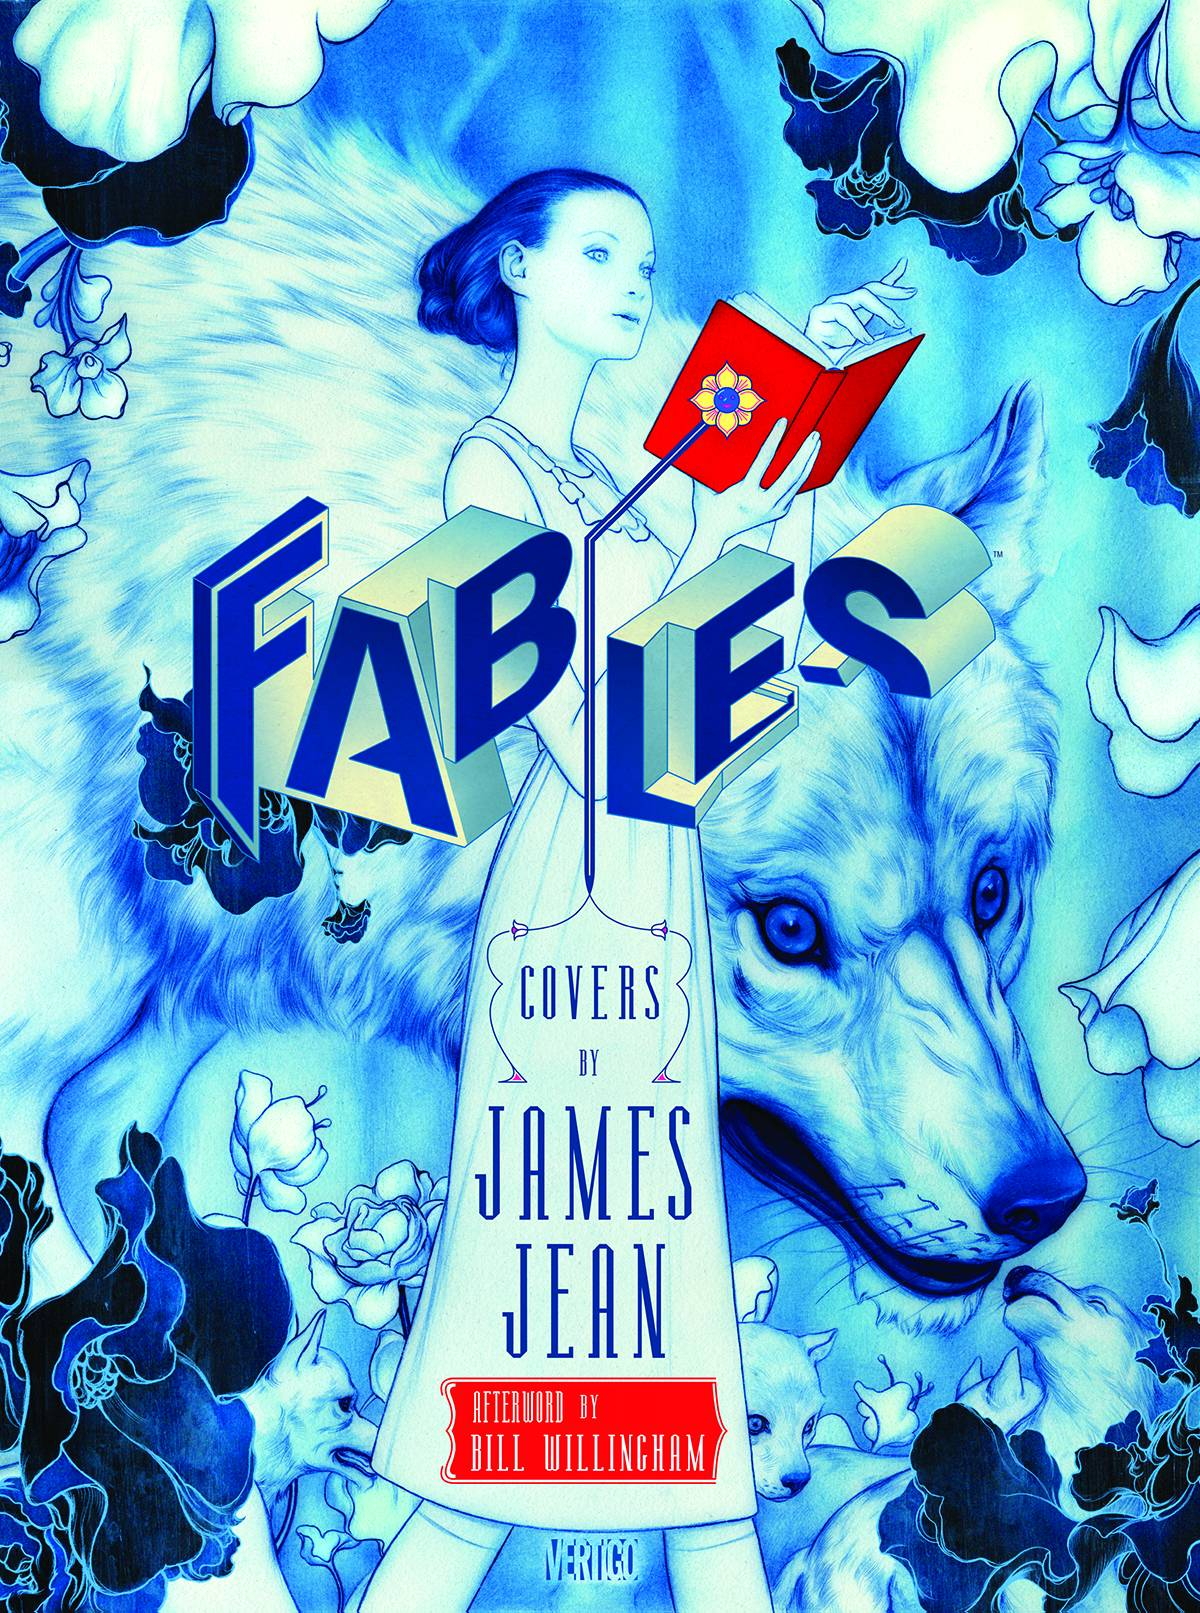 FABLES COMPLETE COVERS BY JAMES JEAN HC NEW ED (MR)